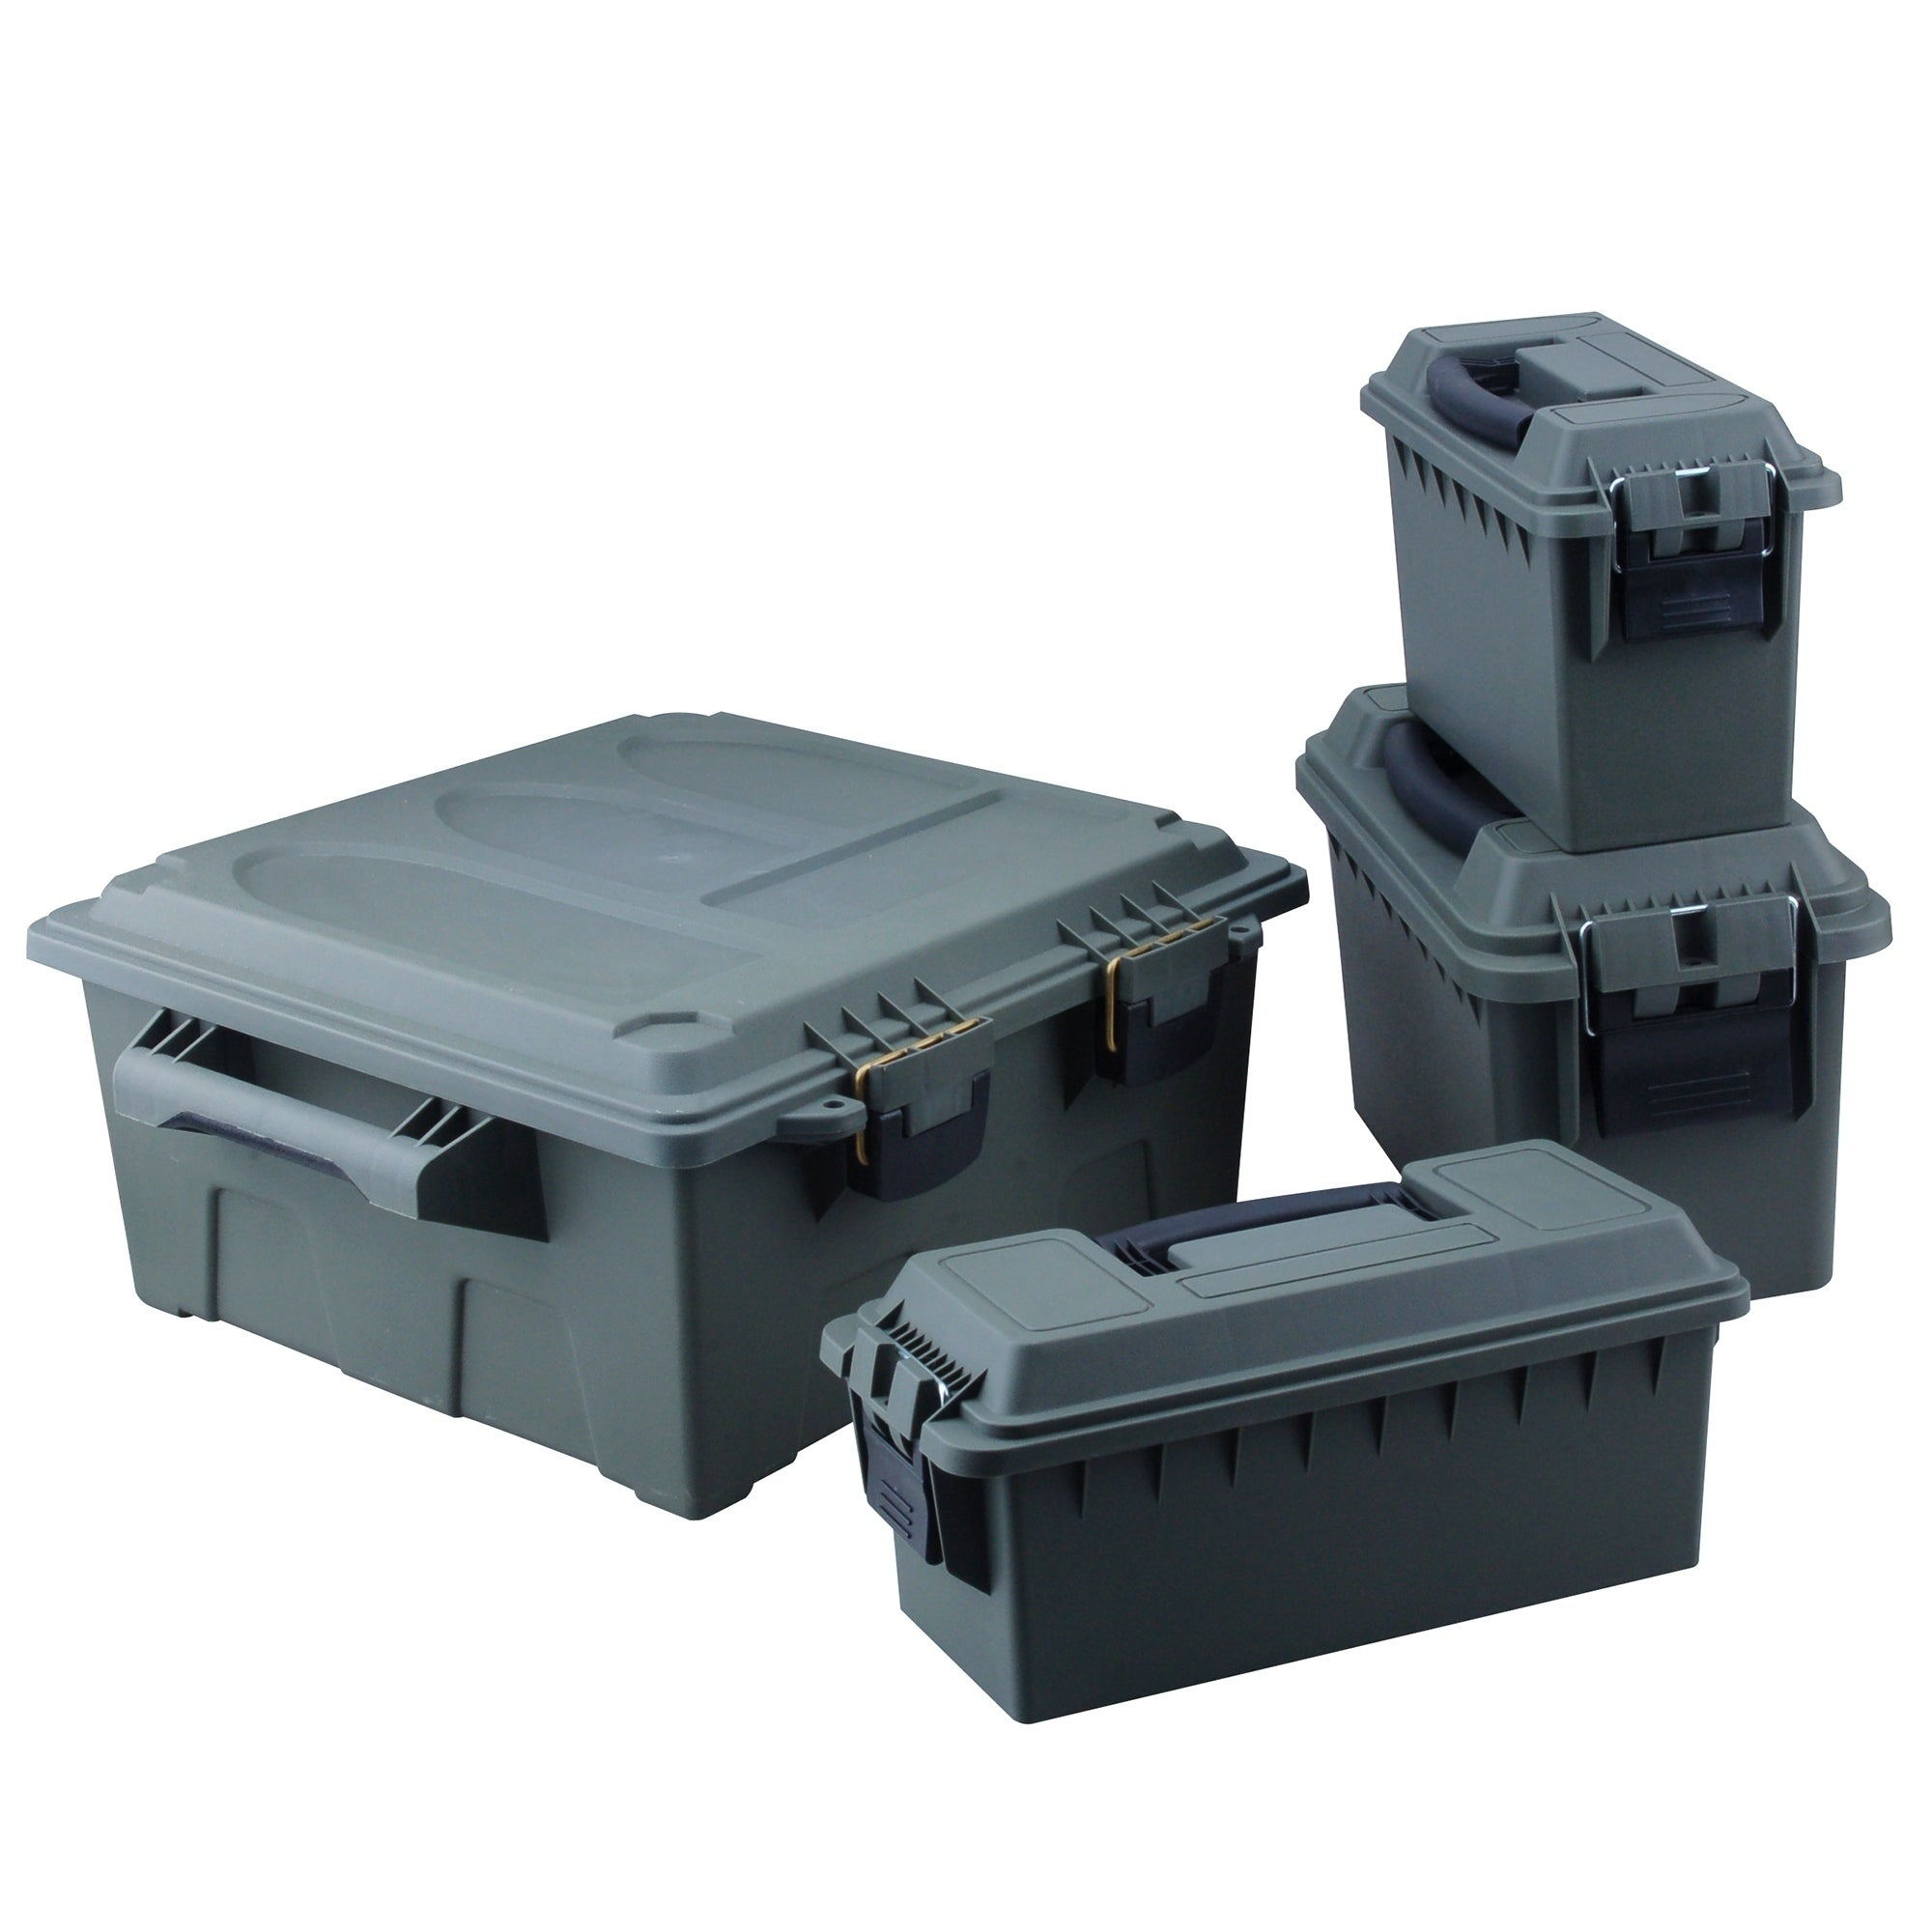 Shop High Desert 4 Pack Ammo Box Dry Storage Utility Box - Free Shipping Today - Overstock.com - 18257880  sc 1 st  Overstock.com & Shop High Desert 4 Pack Ammo Box Dry Storage Utility Box - Free ...